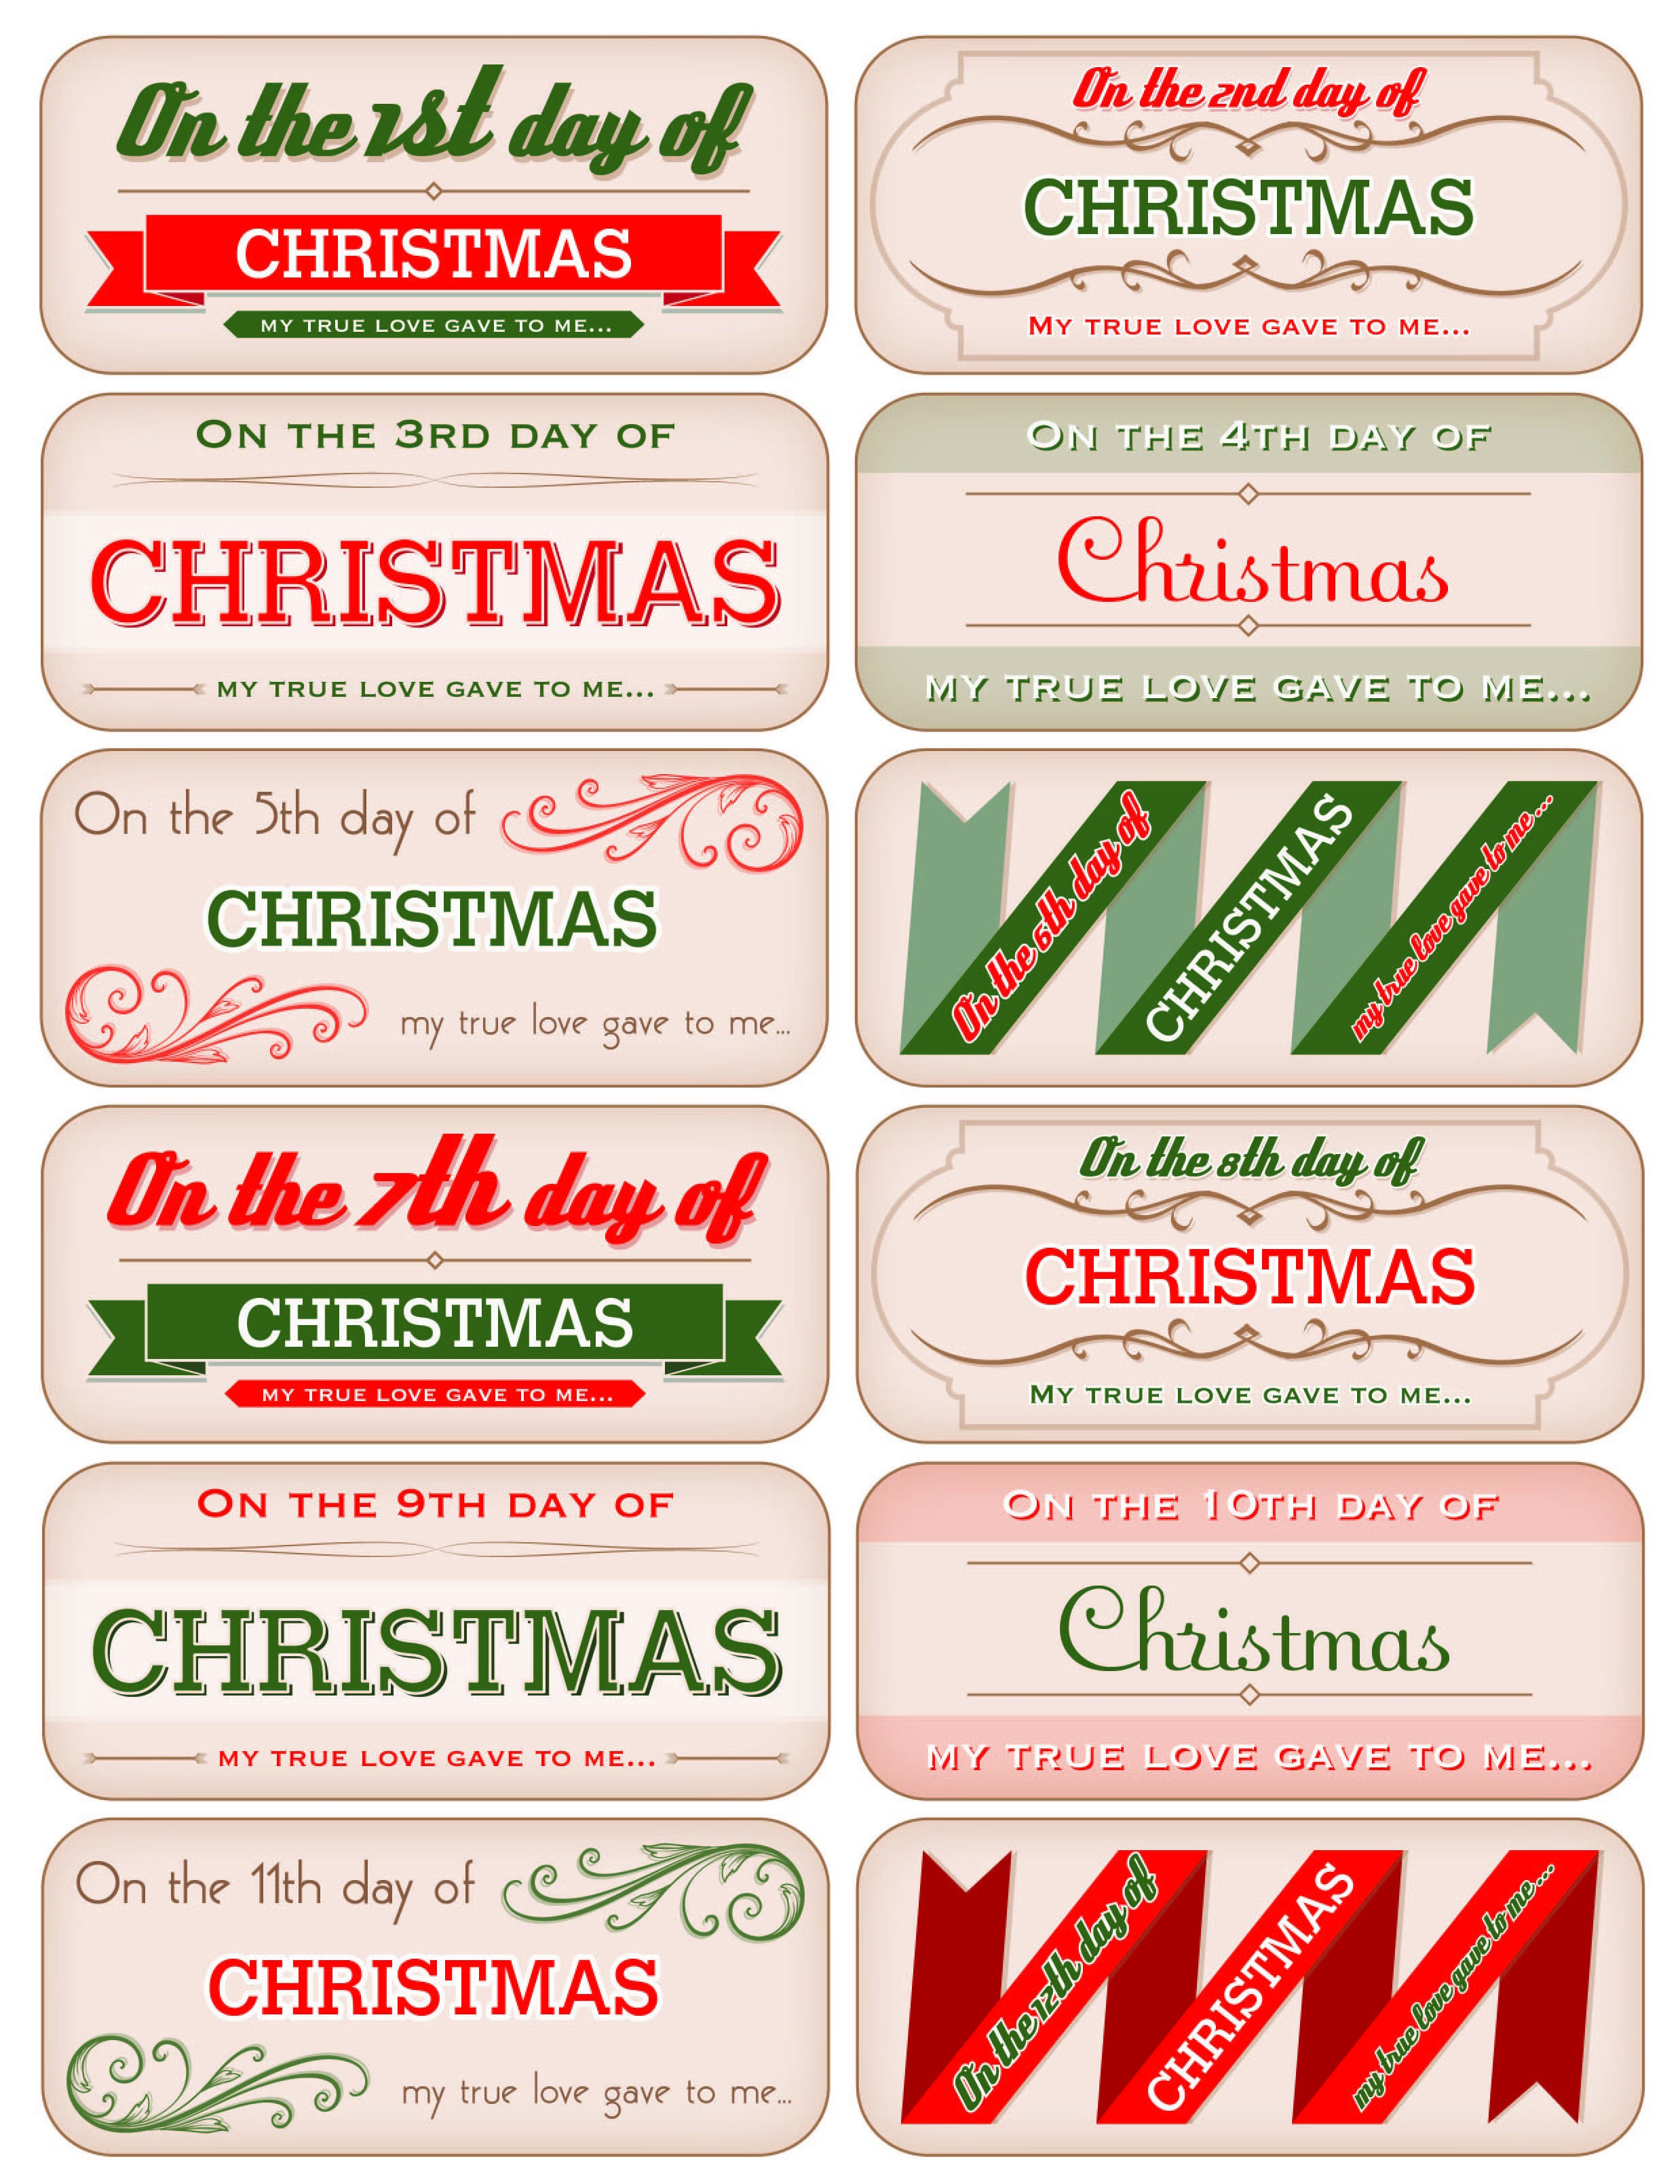 12 Days Of Christmas Tags - Free Download! | Decking The Halls With - Free Printable 12 Days Of Christmas Gift Tags